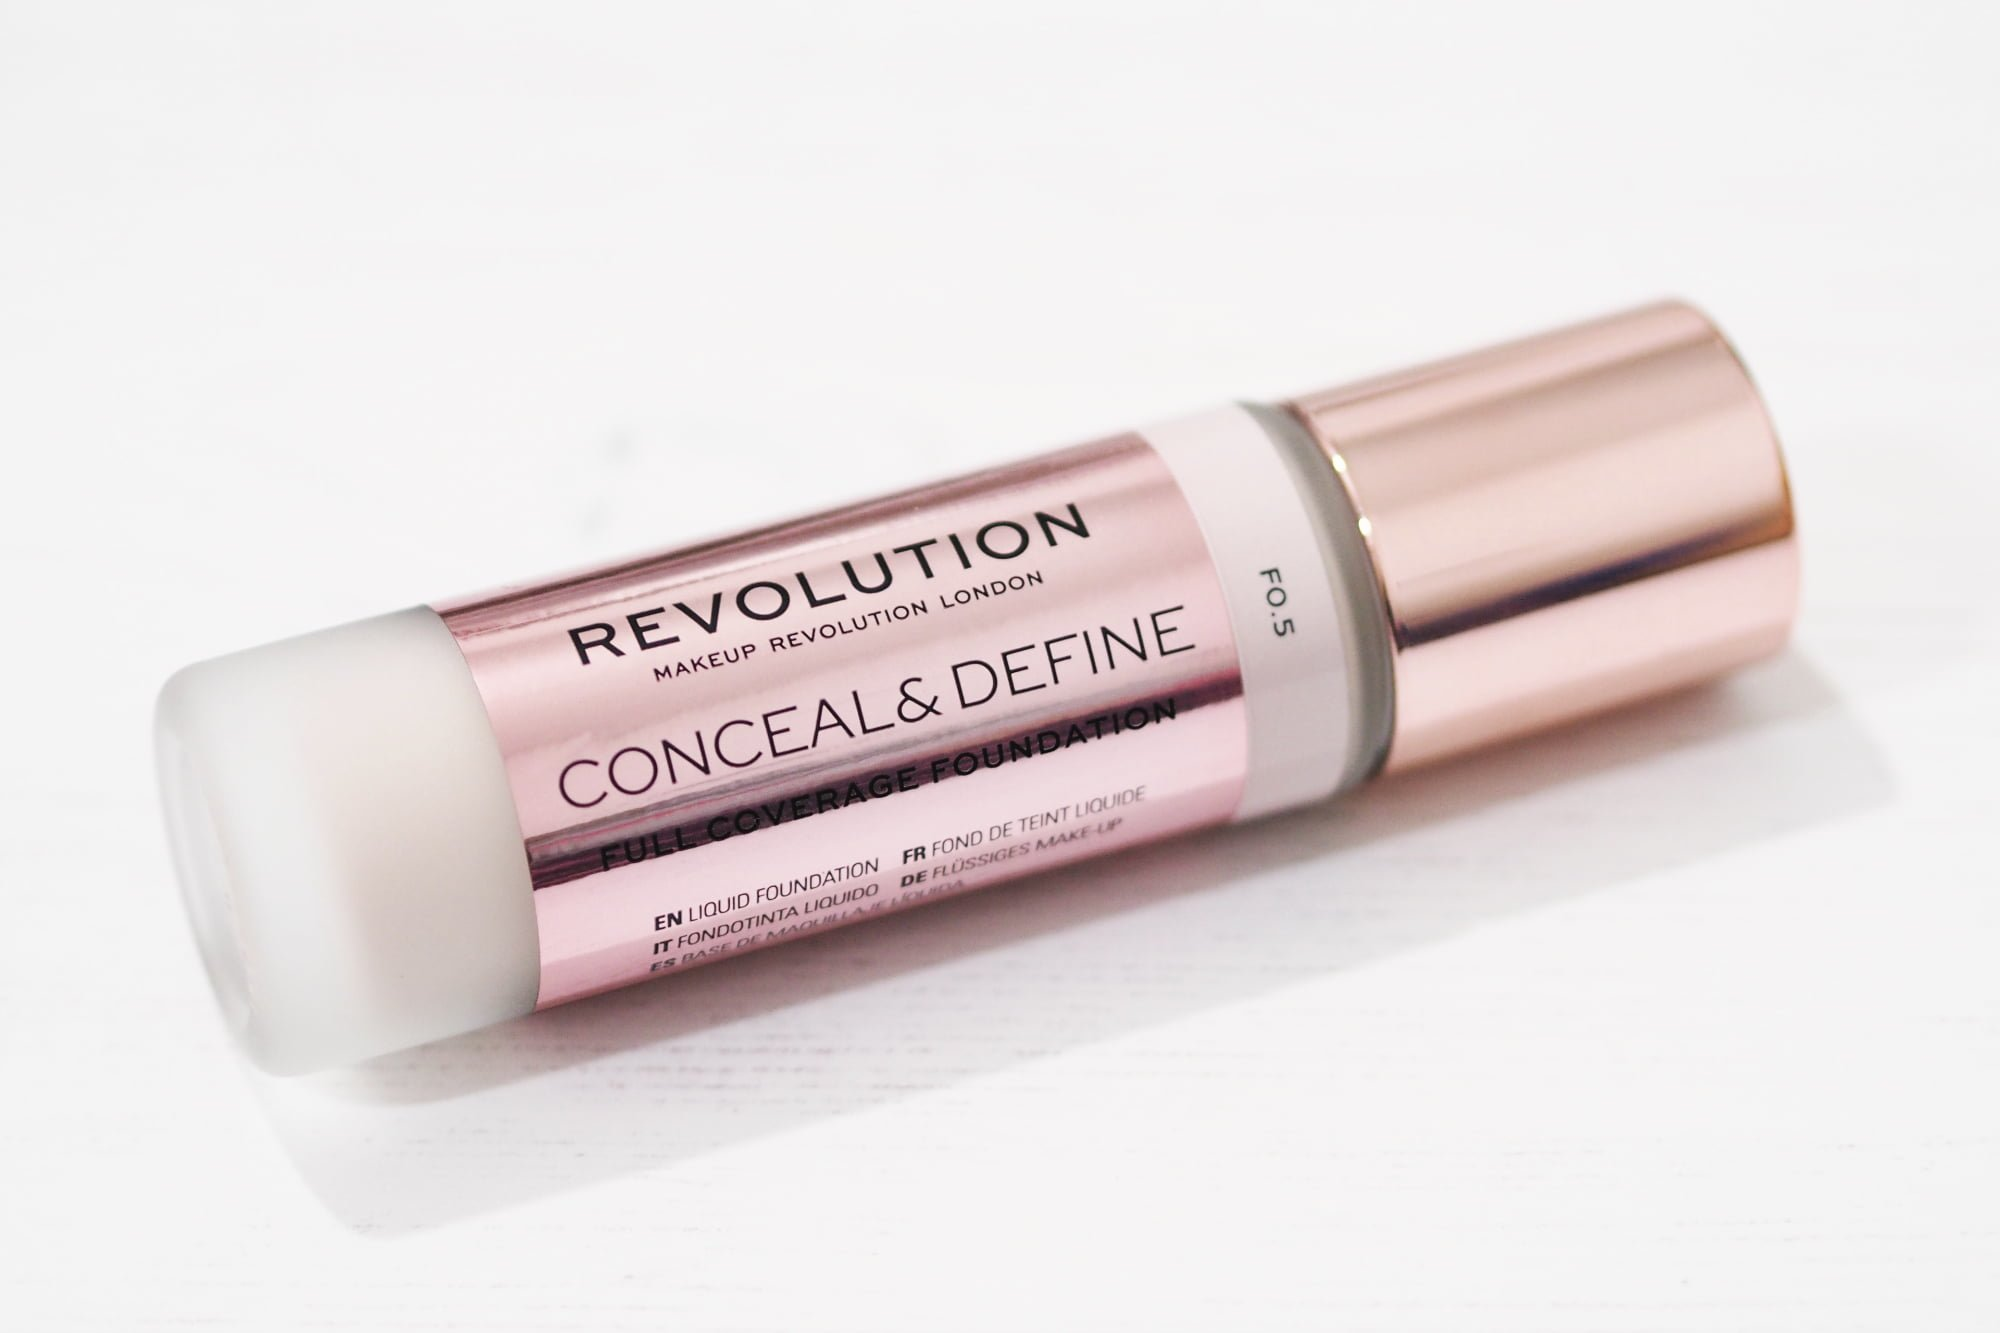 Revolution Conceal and Define Full Coverage Foundation - Review and Swatches